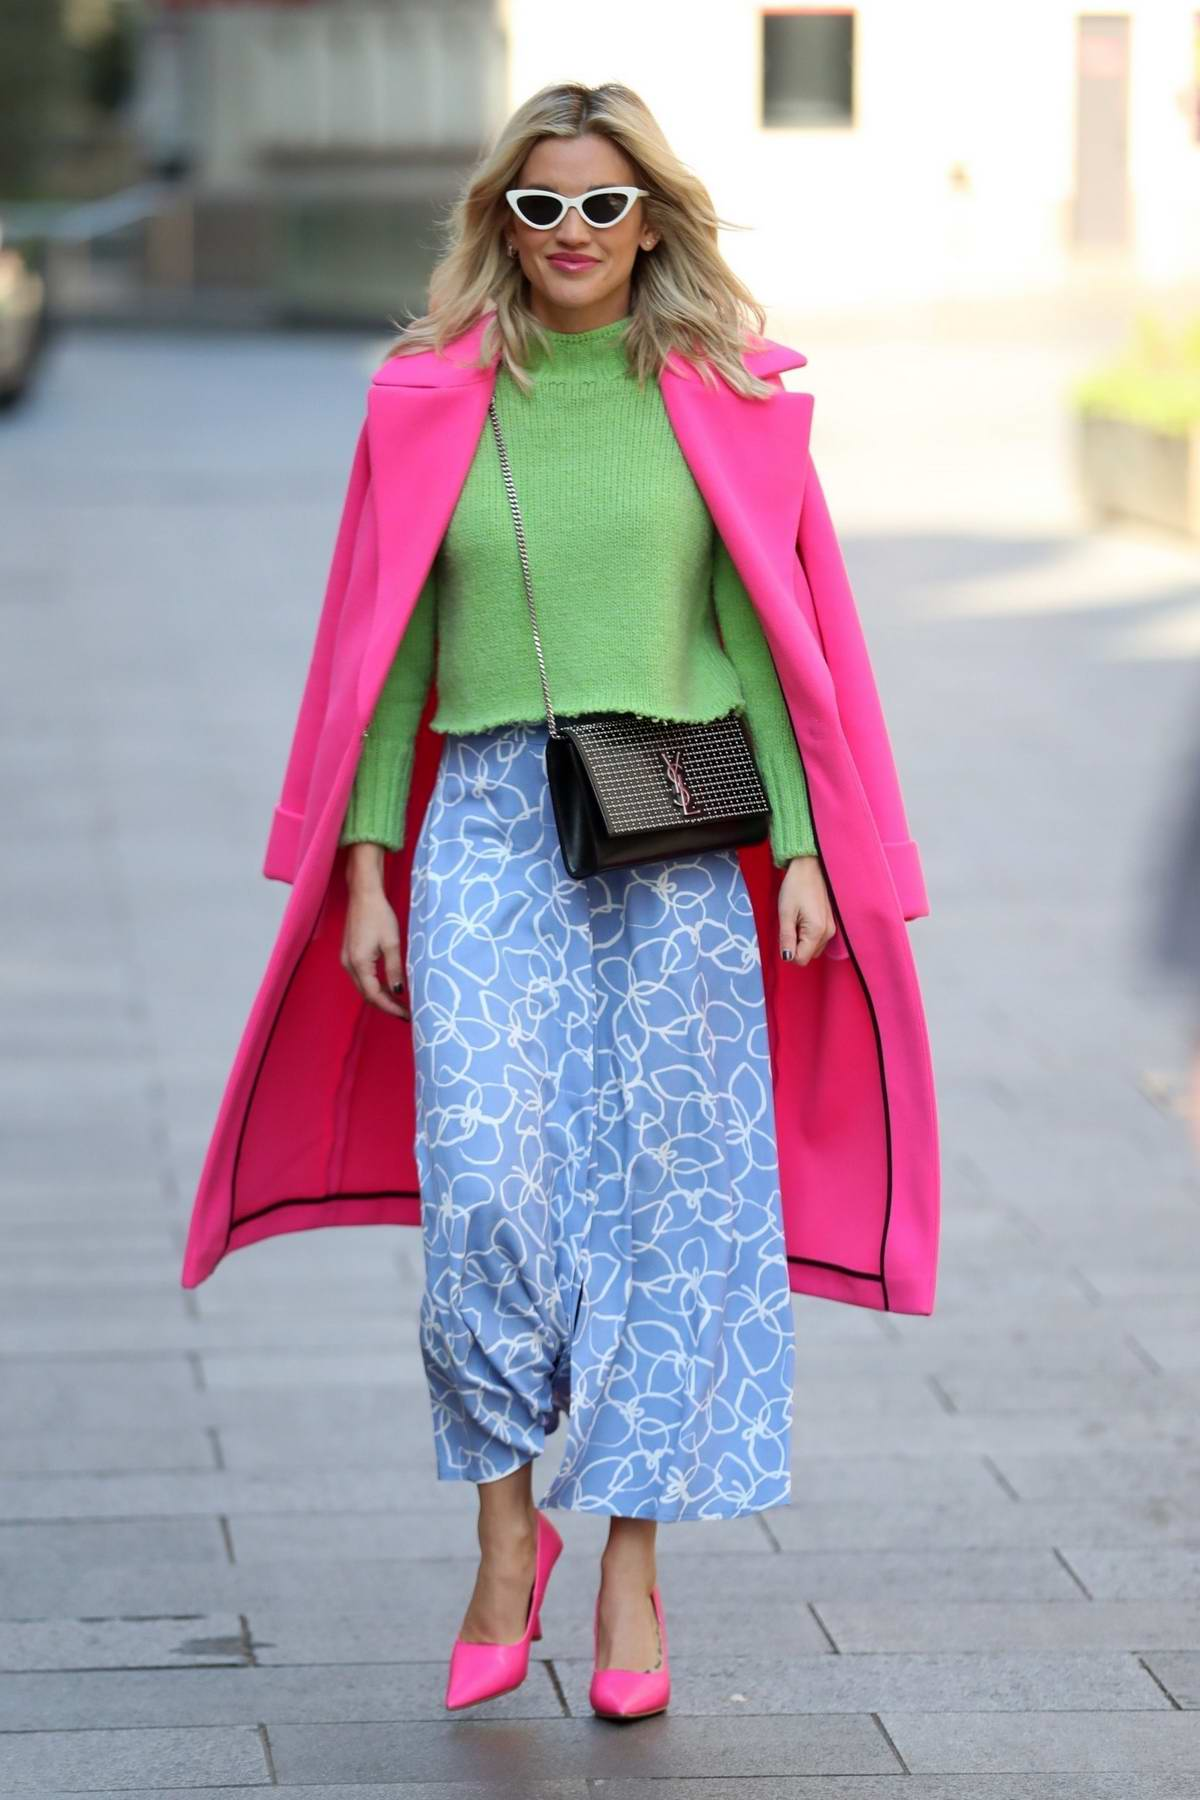 Ashley Roberts puts on a colorful display as she leaves Heart Radio in London, UK